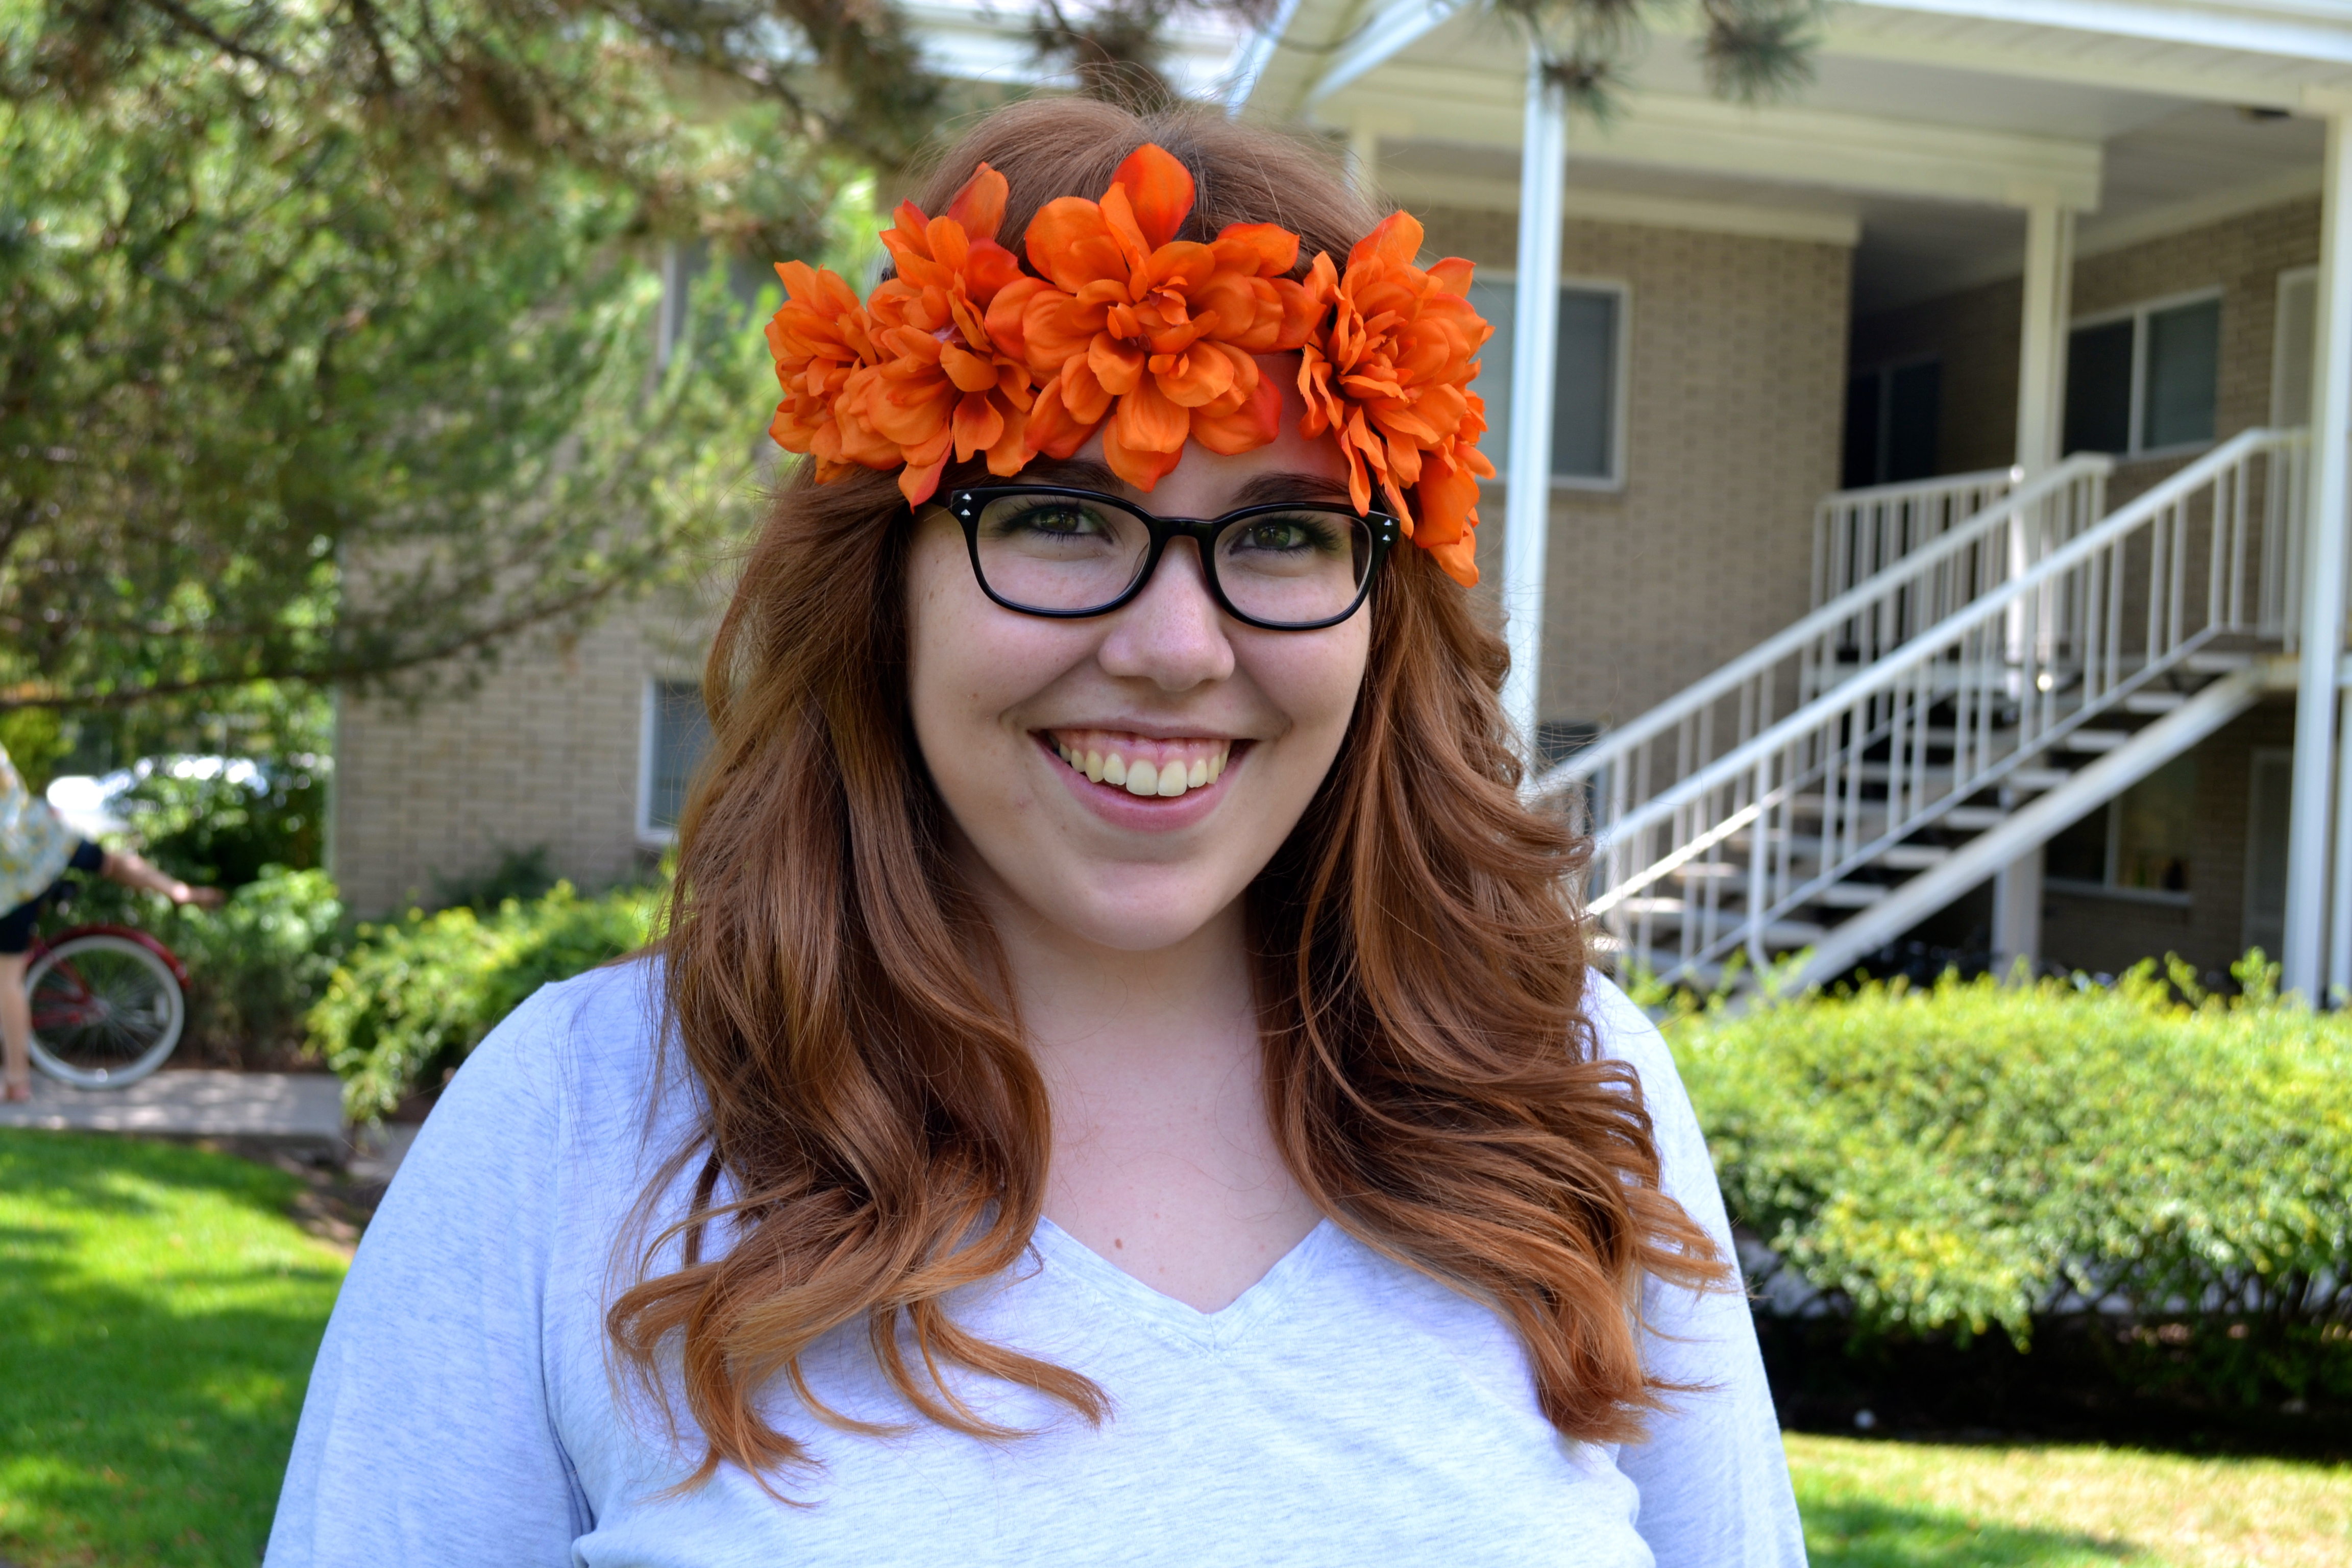 Flower crown eggswithketchup yes i dyed my hair this summer and i am loving my red head era tons of people have been surprised at how natural it looks and some couldnt believe izmirmasajfo Image collections